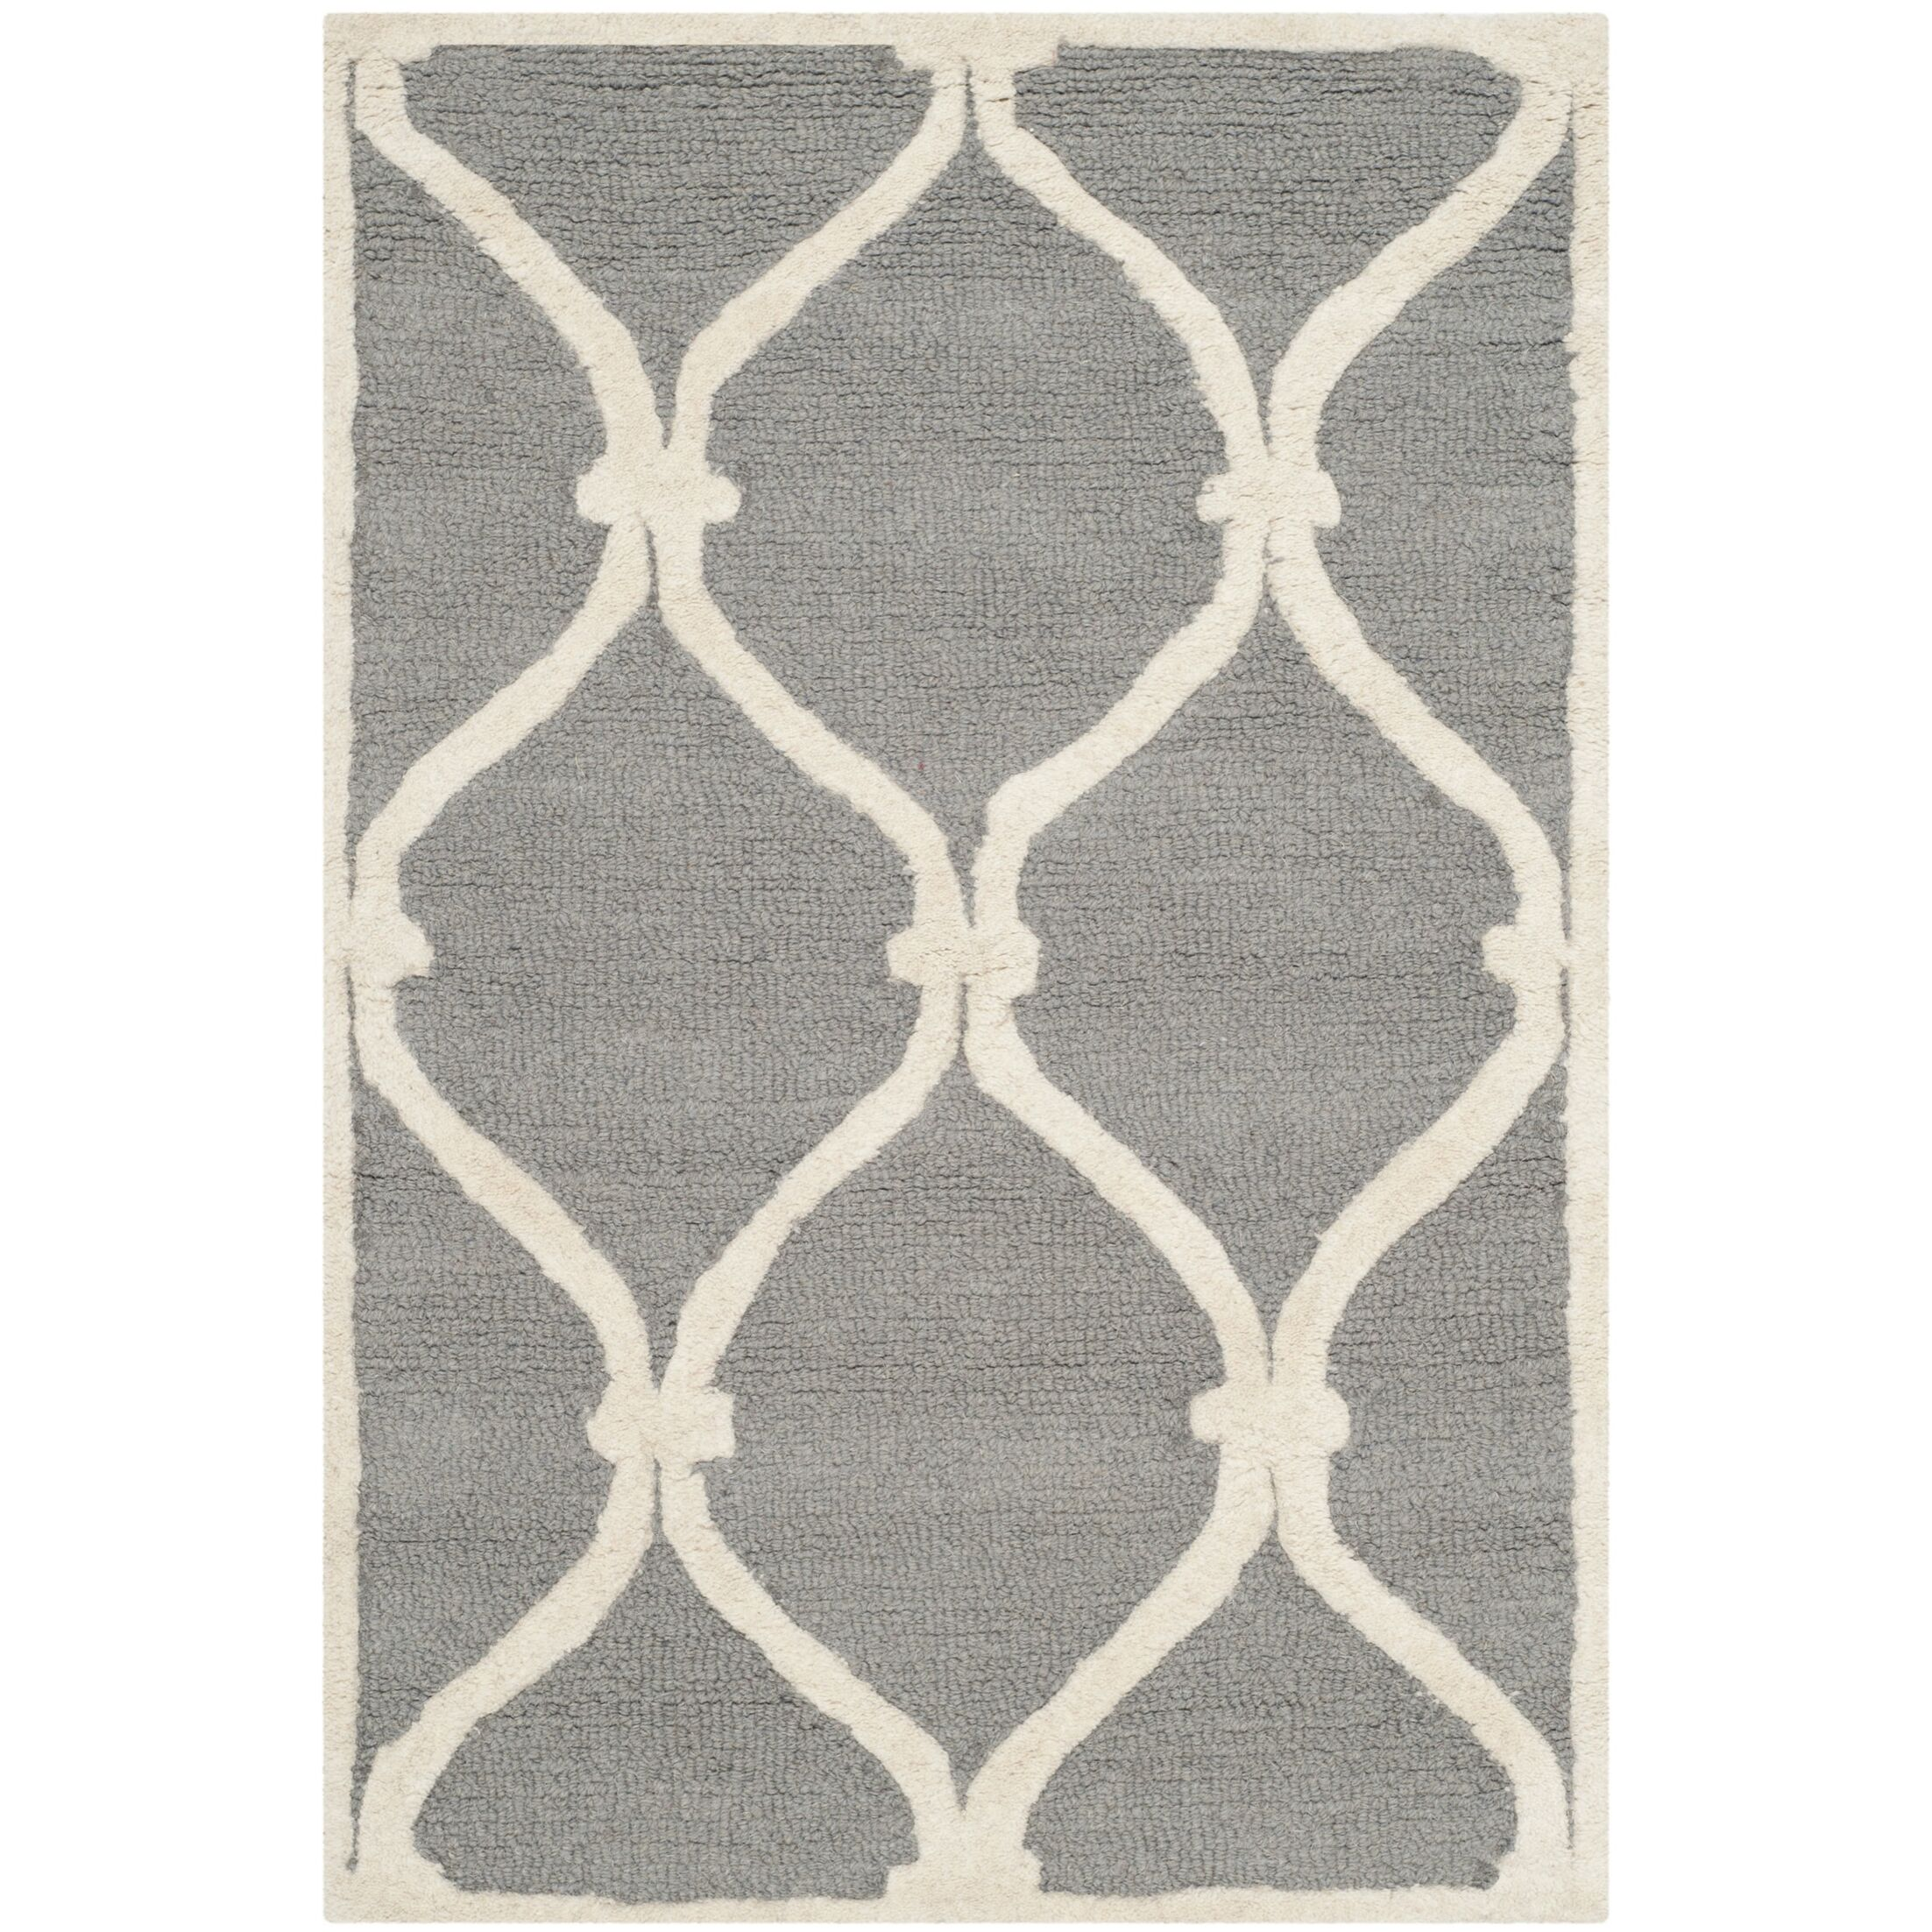 Martins Hand-Tufted Gray Area Rug Rug Size: Square 8'